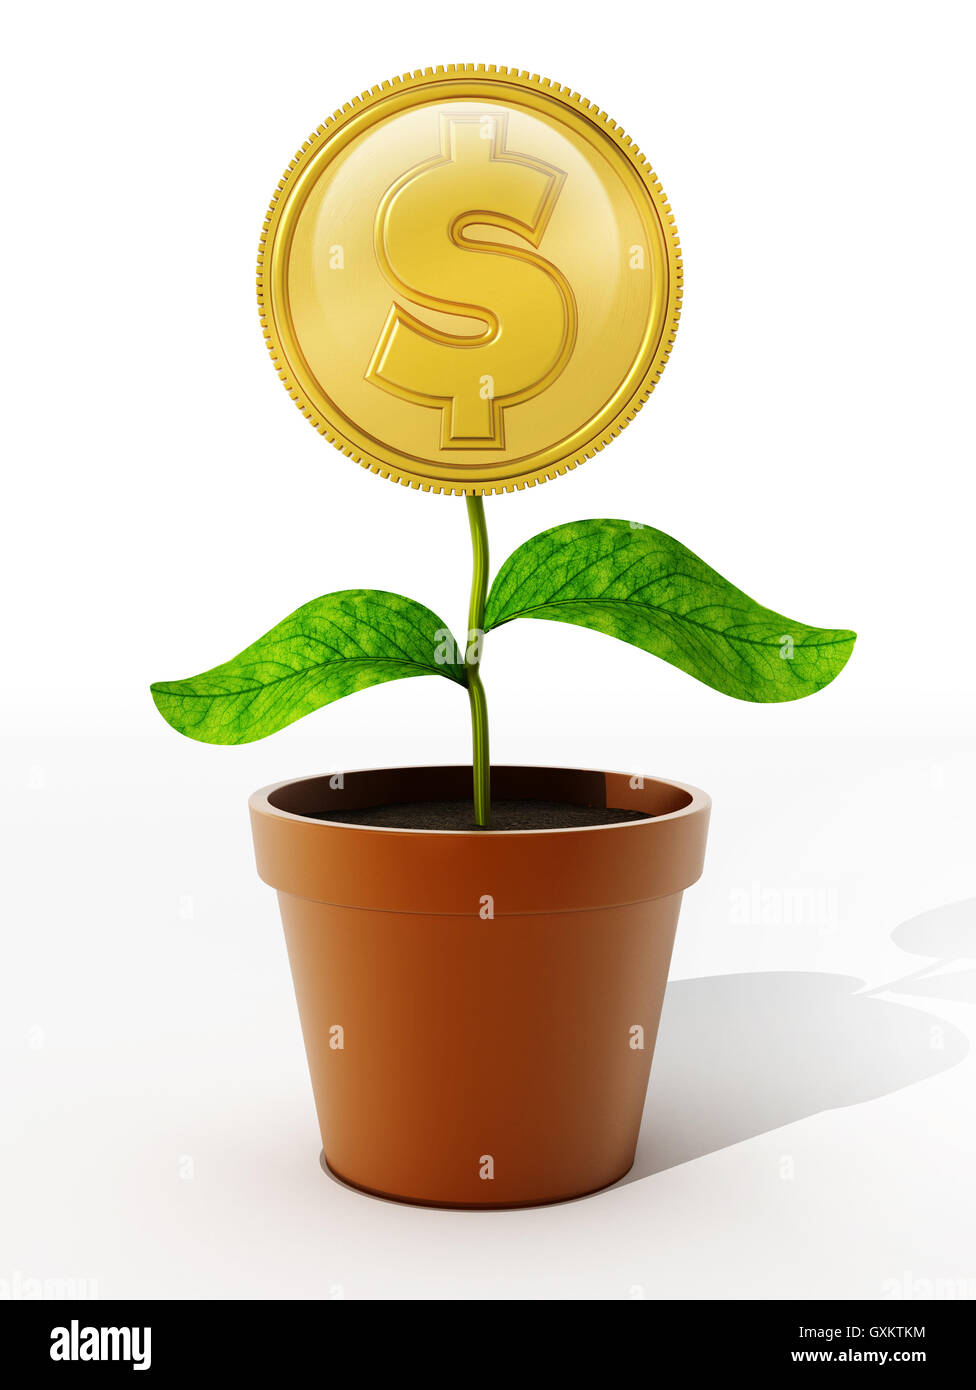 Gold coin with dollar sign on the flower pot. 3D illustration. - Stock Image